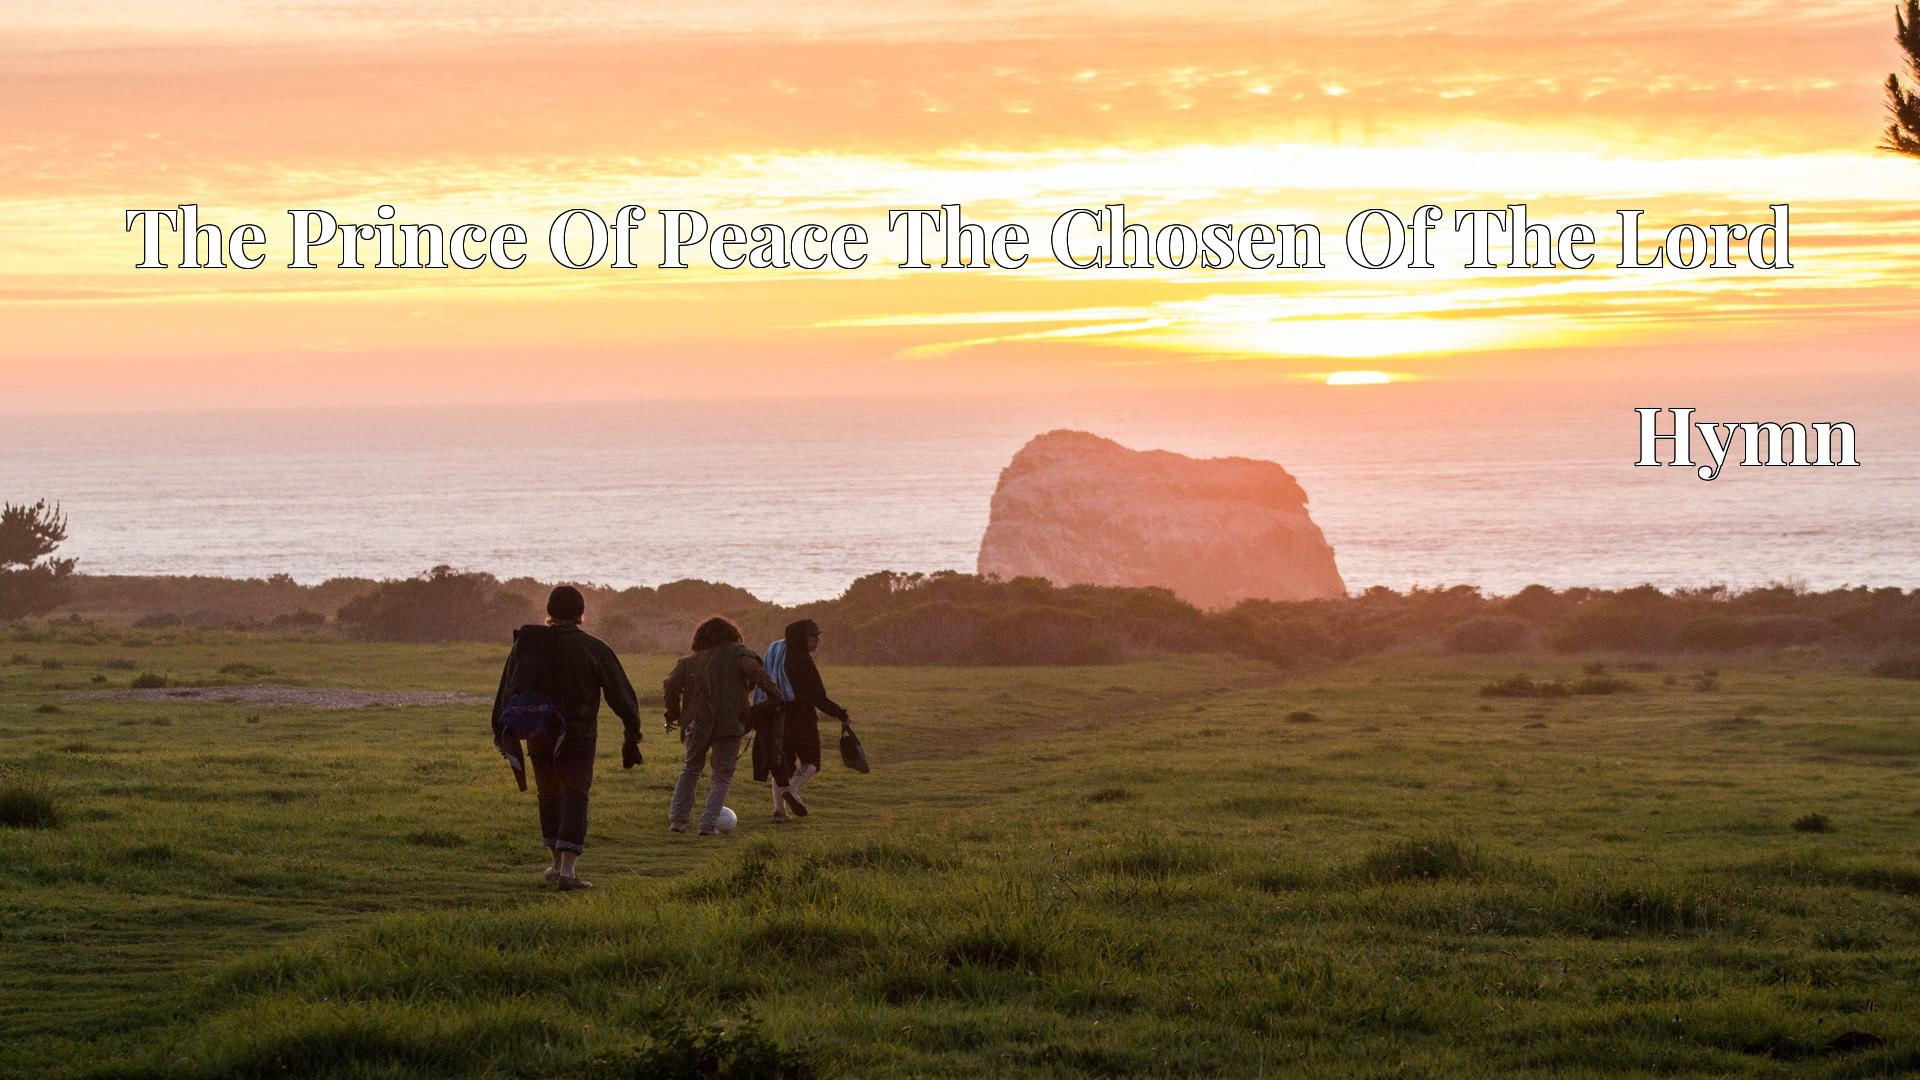 The Prince Of Peace The Chosen Of The Lord - Hymn